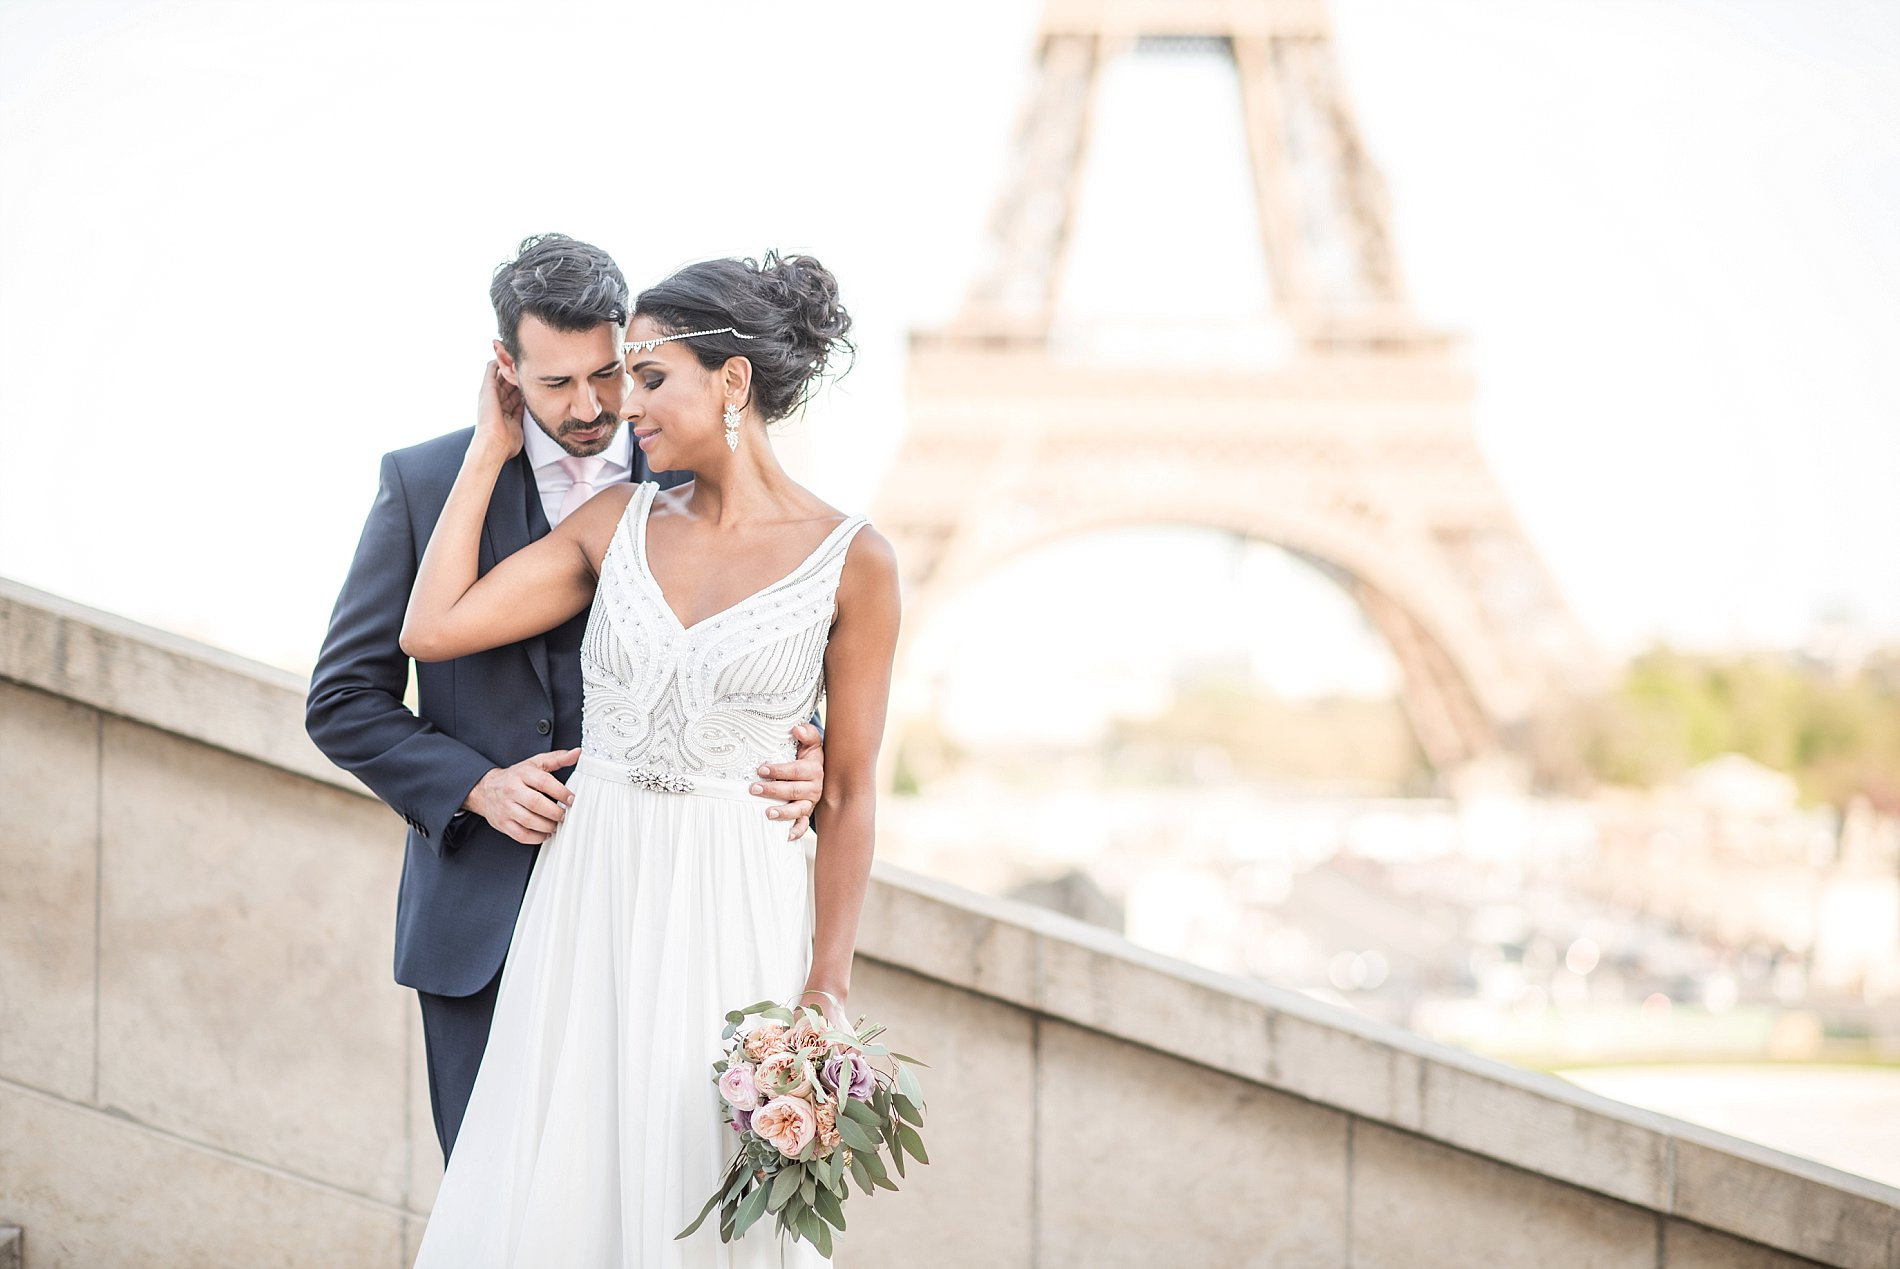 Paris elopement wedding photography by Jane Beadnell Photography-486